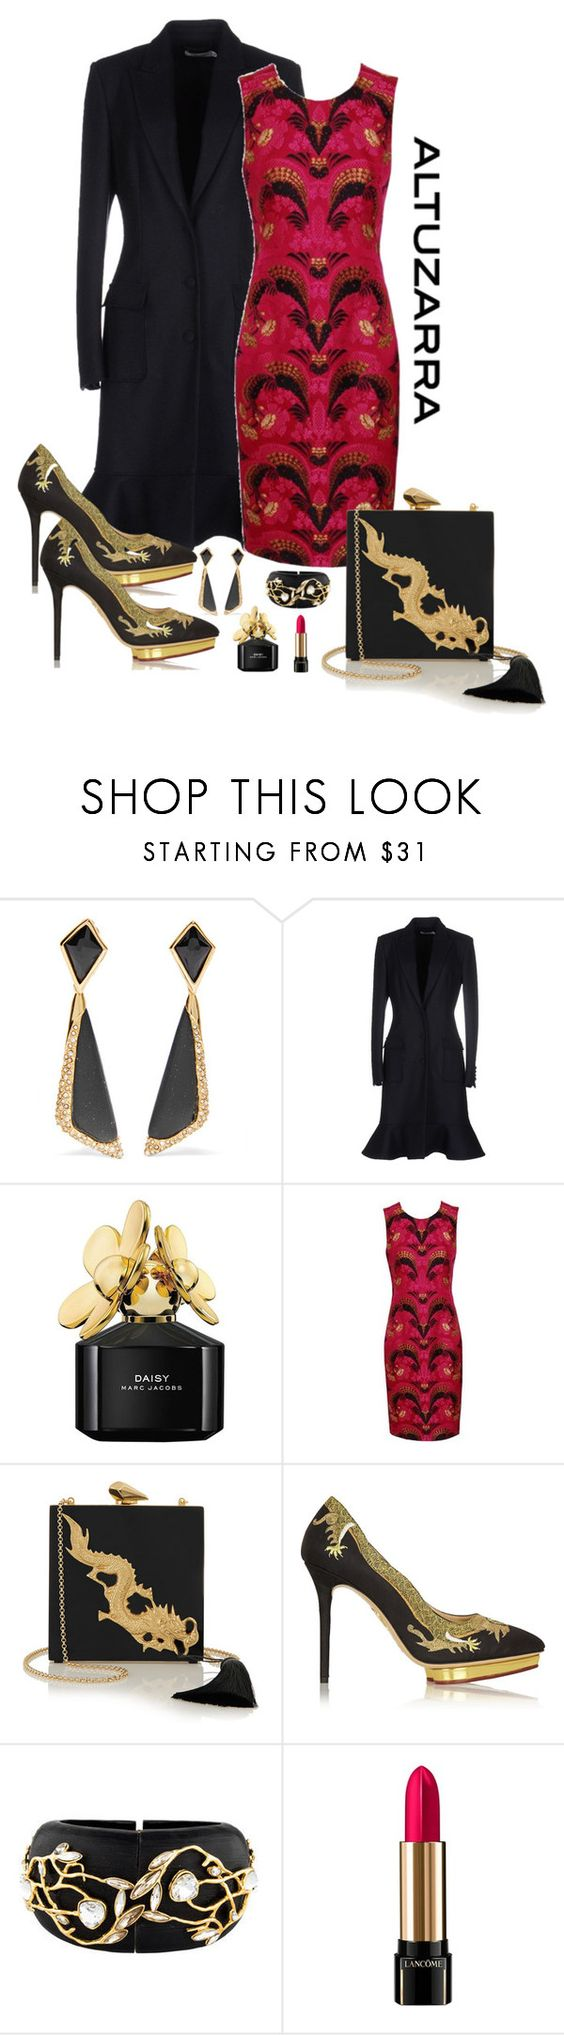 """Altuzarra Ruffled Coat Evening Look"" by romaboots-1 ❤ liked on Polyvore featuring Alexis Bittar, Altuzarra, Marc Jacobs, Alexander McQueen, KOTUR, Charlotte Olympia and Lancôme"